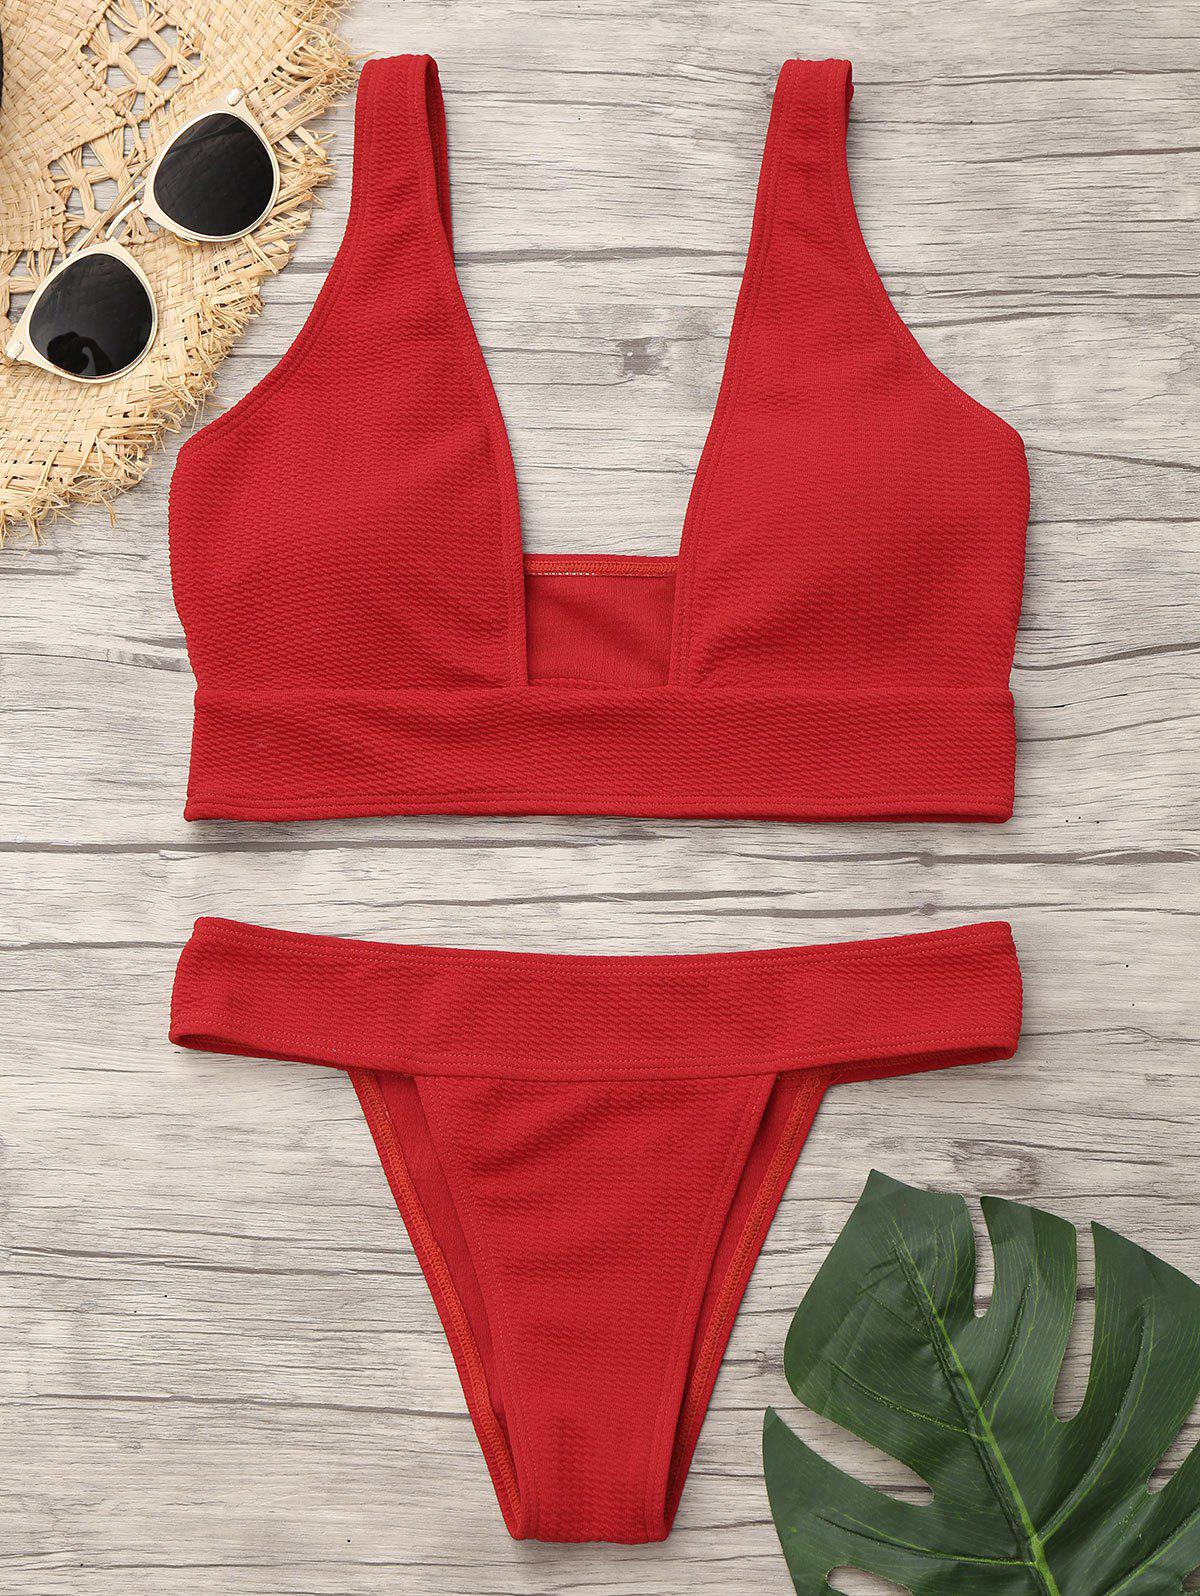 Plunging Neckline Low Waist BikiniWOMEN<br><br>Size: M; Color: RED; Swimwear Type: Bikini; Gender: For Women; Material: Nylon,Spandex; Bra Style: Padded; Support Type: Wire Free; Neckline: Plunging Neck; Pattern Type: Solid Color; Waist: Low Waisted; Elasticity: Elastic; Weight: 0.1900kg; Package Contents: 1 x Bra  1 x Panties;